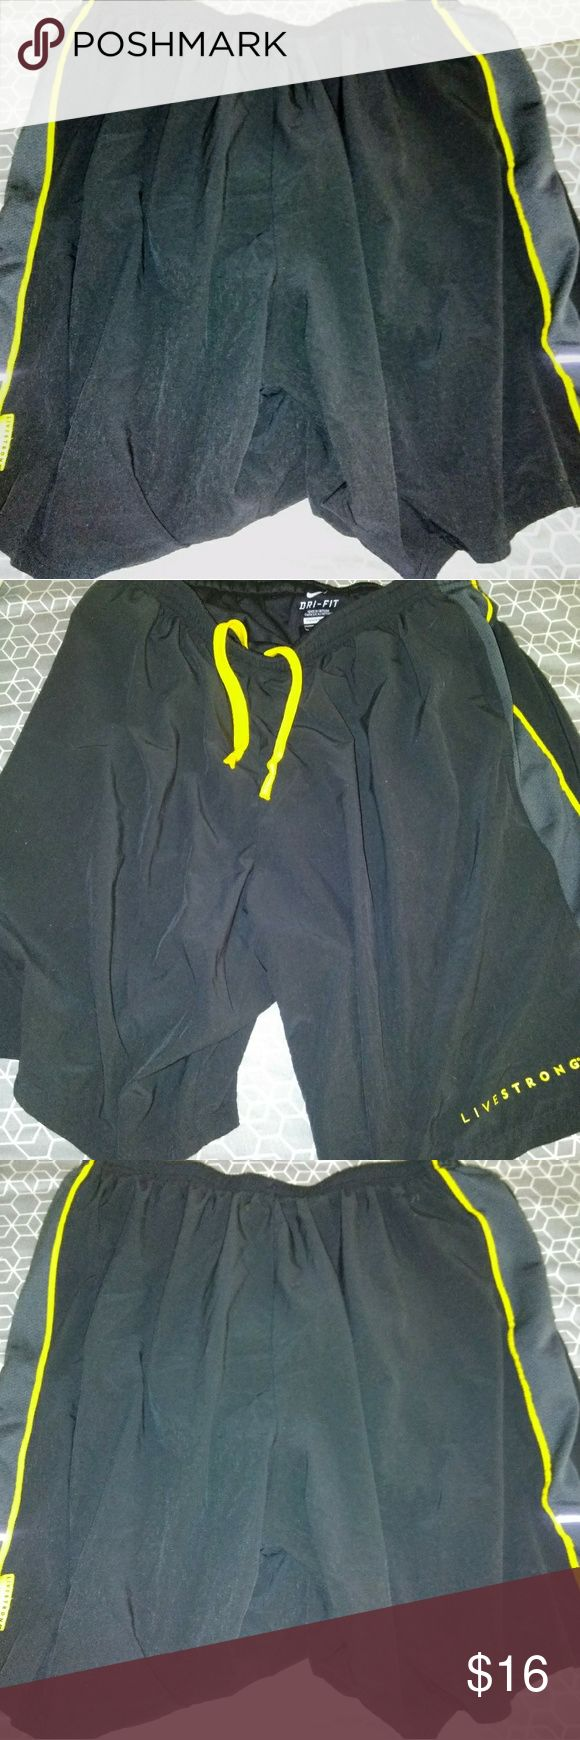 Men's Nike Livestrong Running Shorts Size Large These shorts are in good condition. Has a drawstring. side pockets,  and built in brief. Nike Shorts Athletic